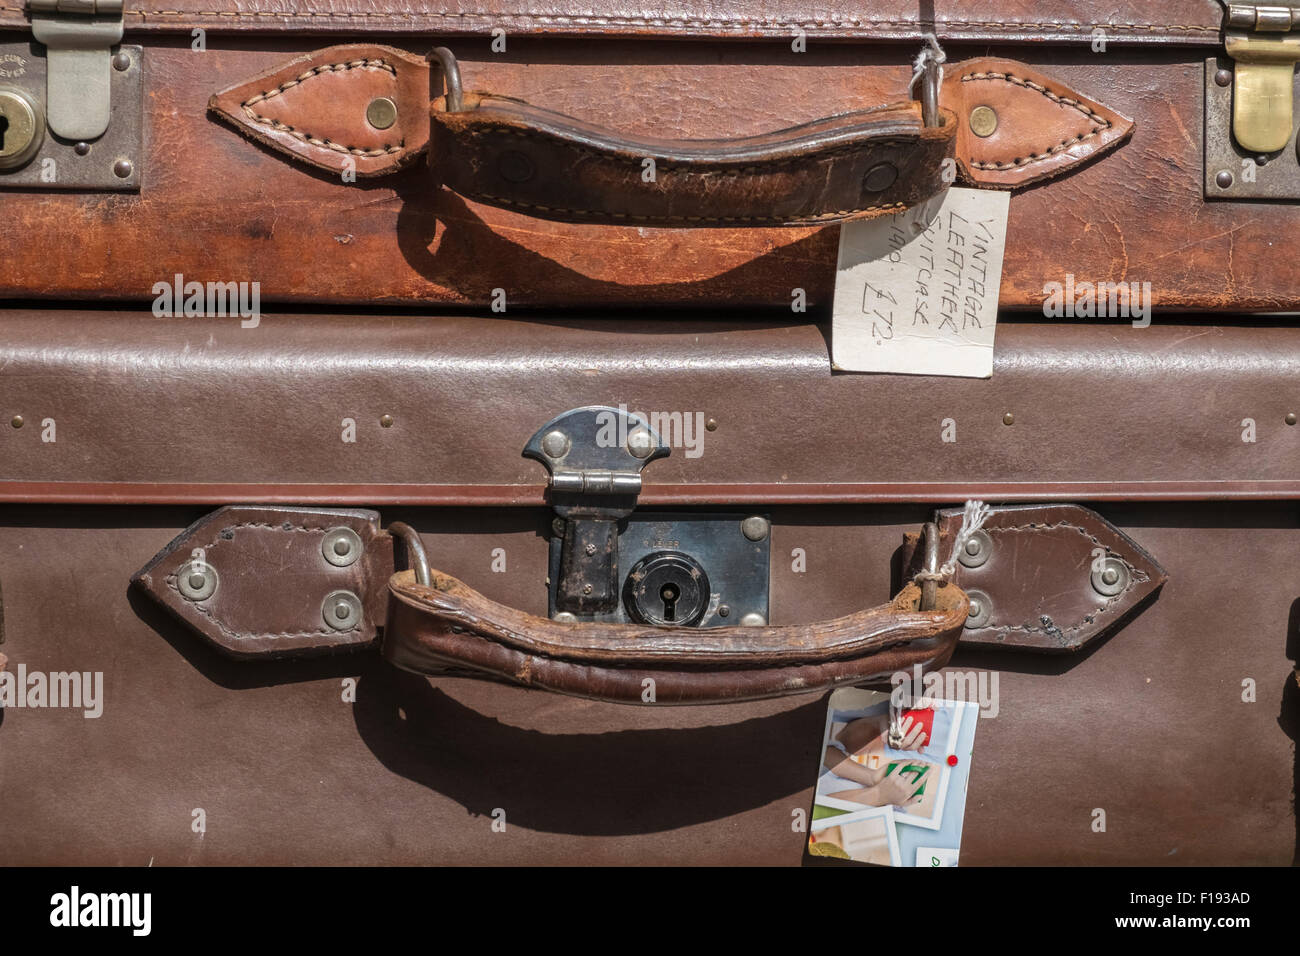 Close up view of two old leather suitcases on display for sale at an antiques store. - Stock Image